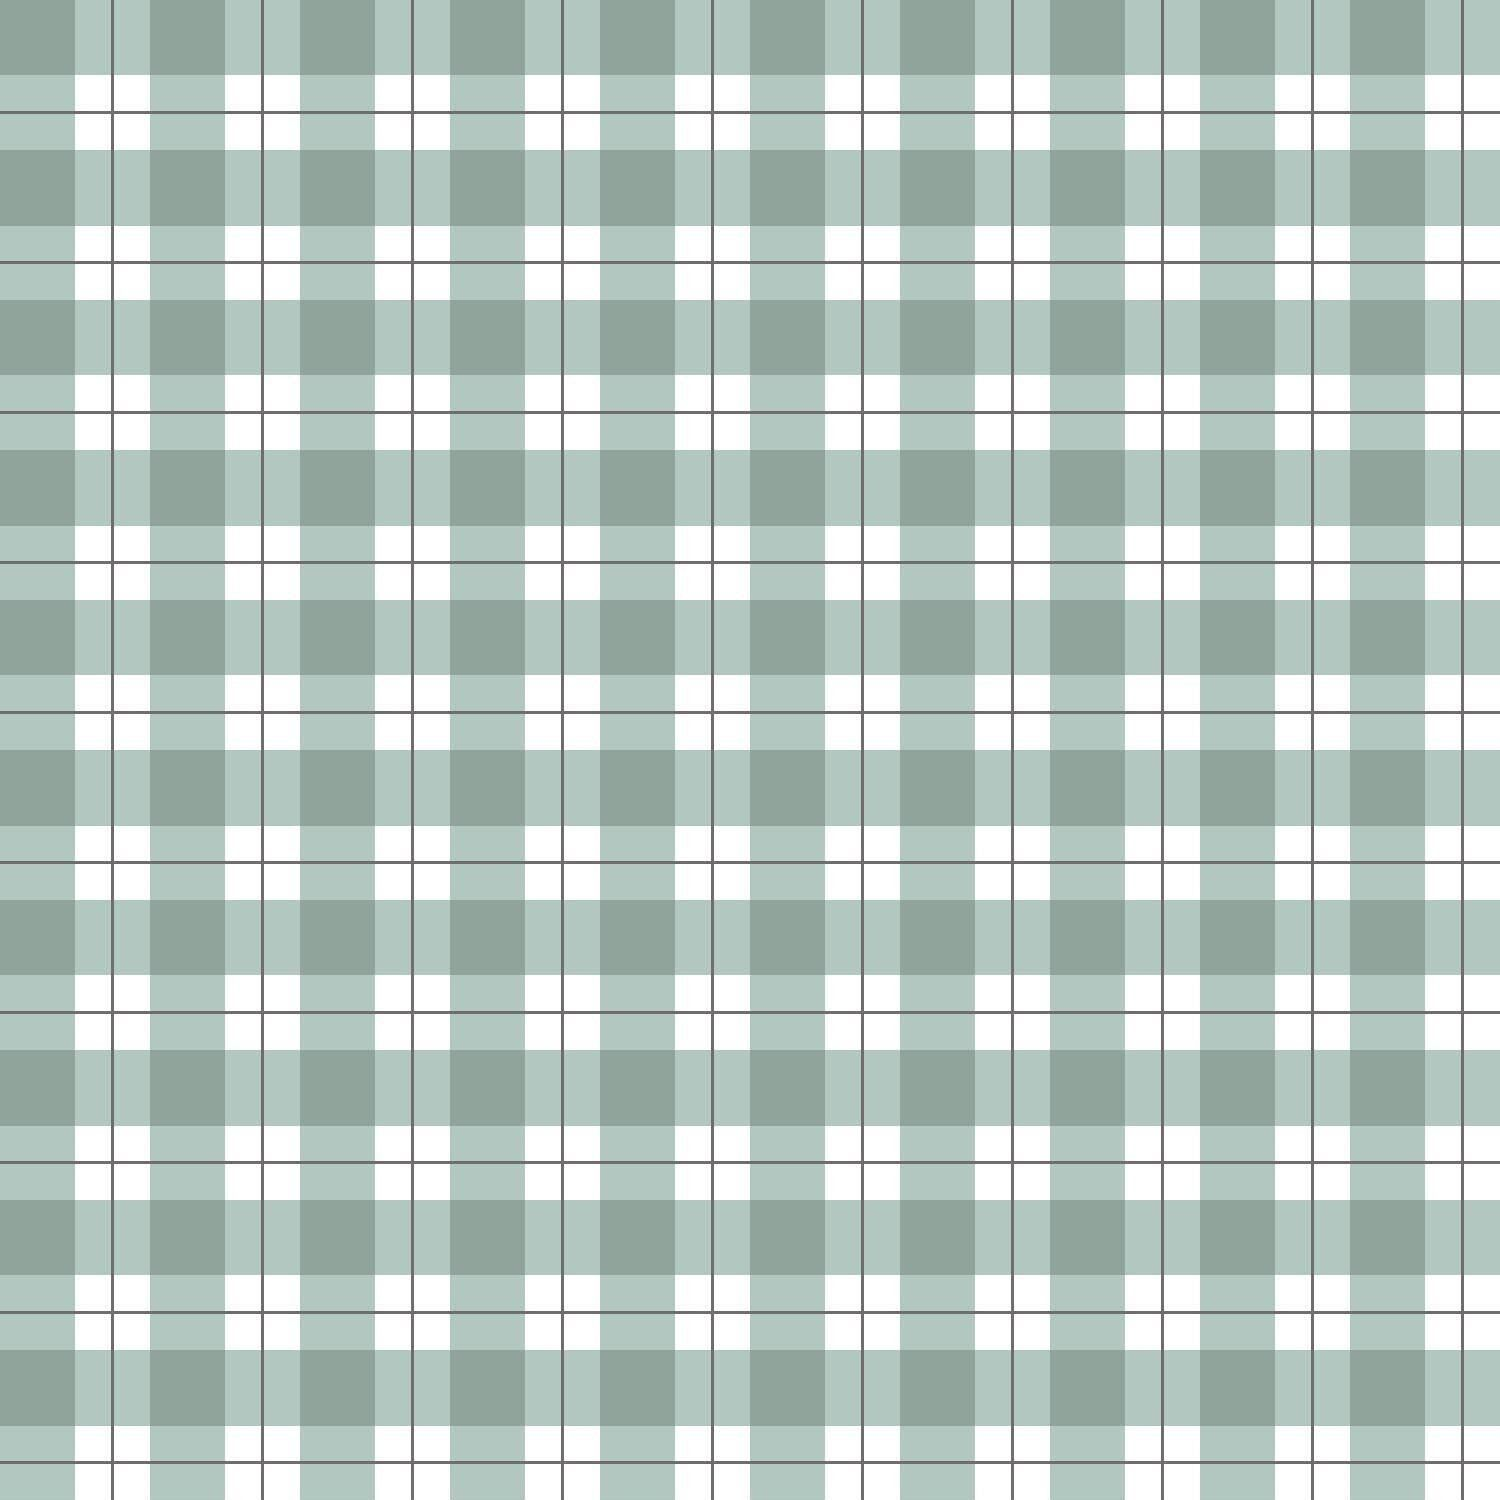 1500x1500 - Blue Plaid 40